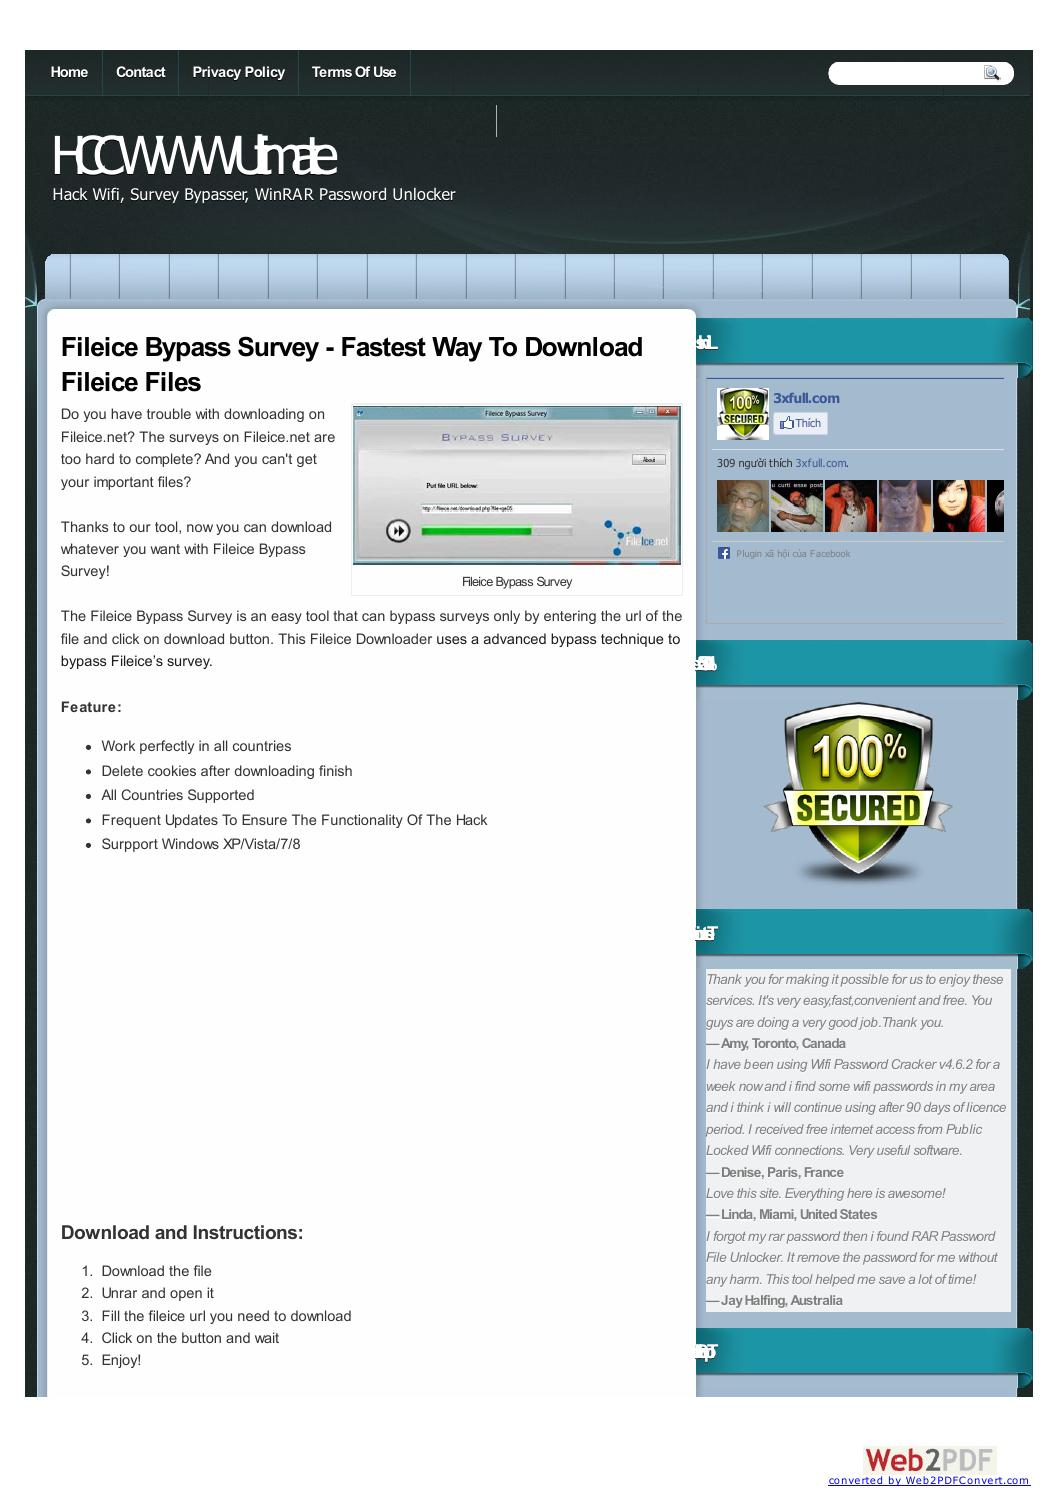 fileice survey bypasser - download without survey - 3xfull com by